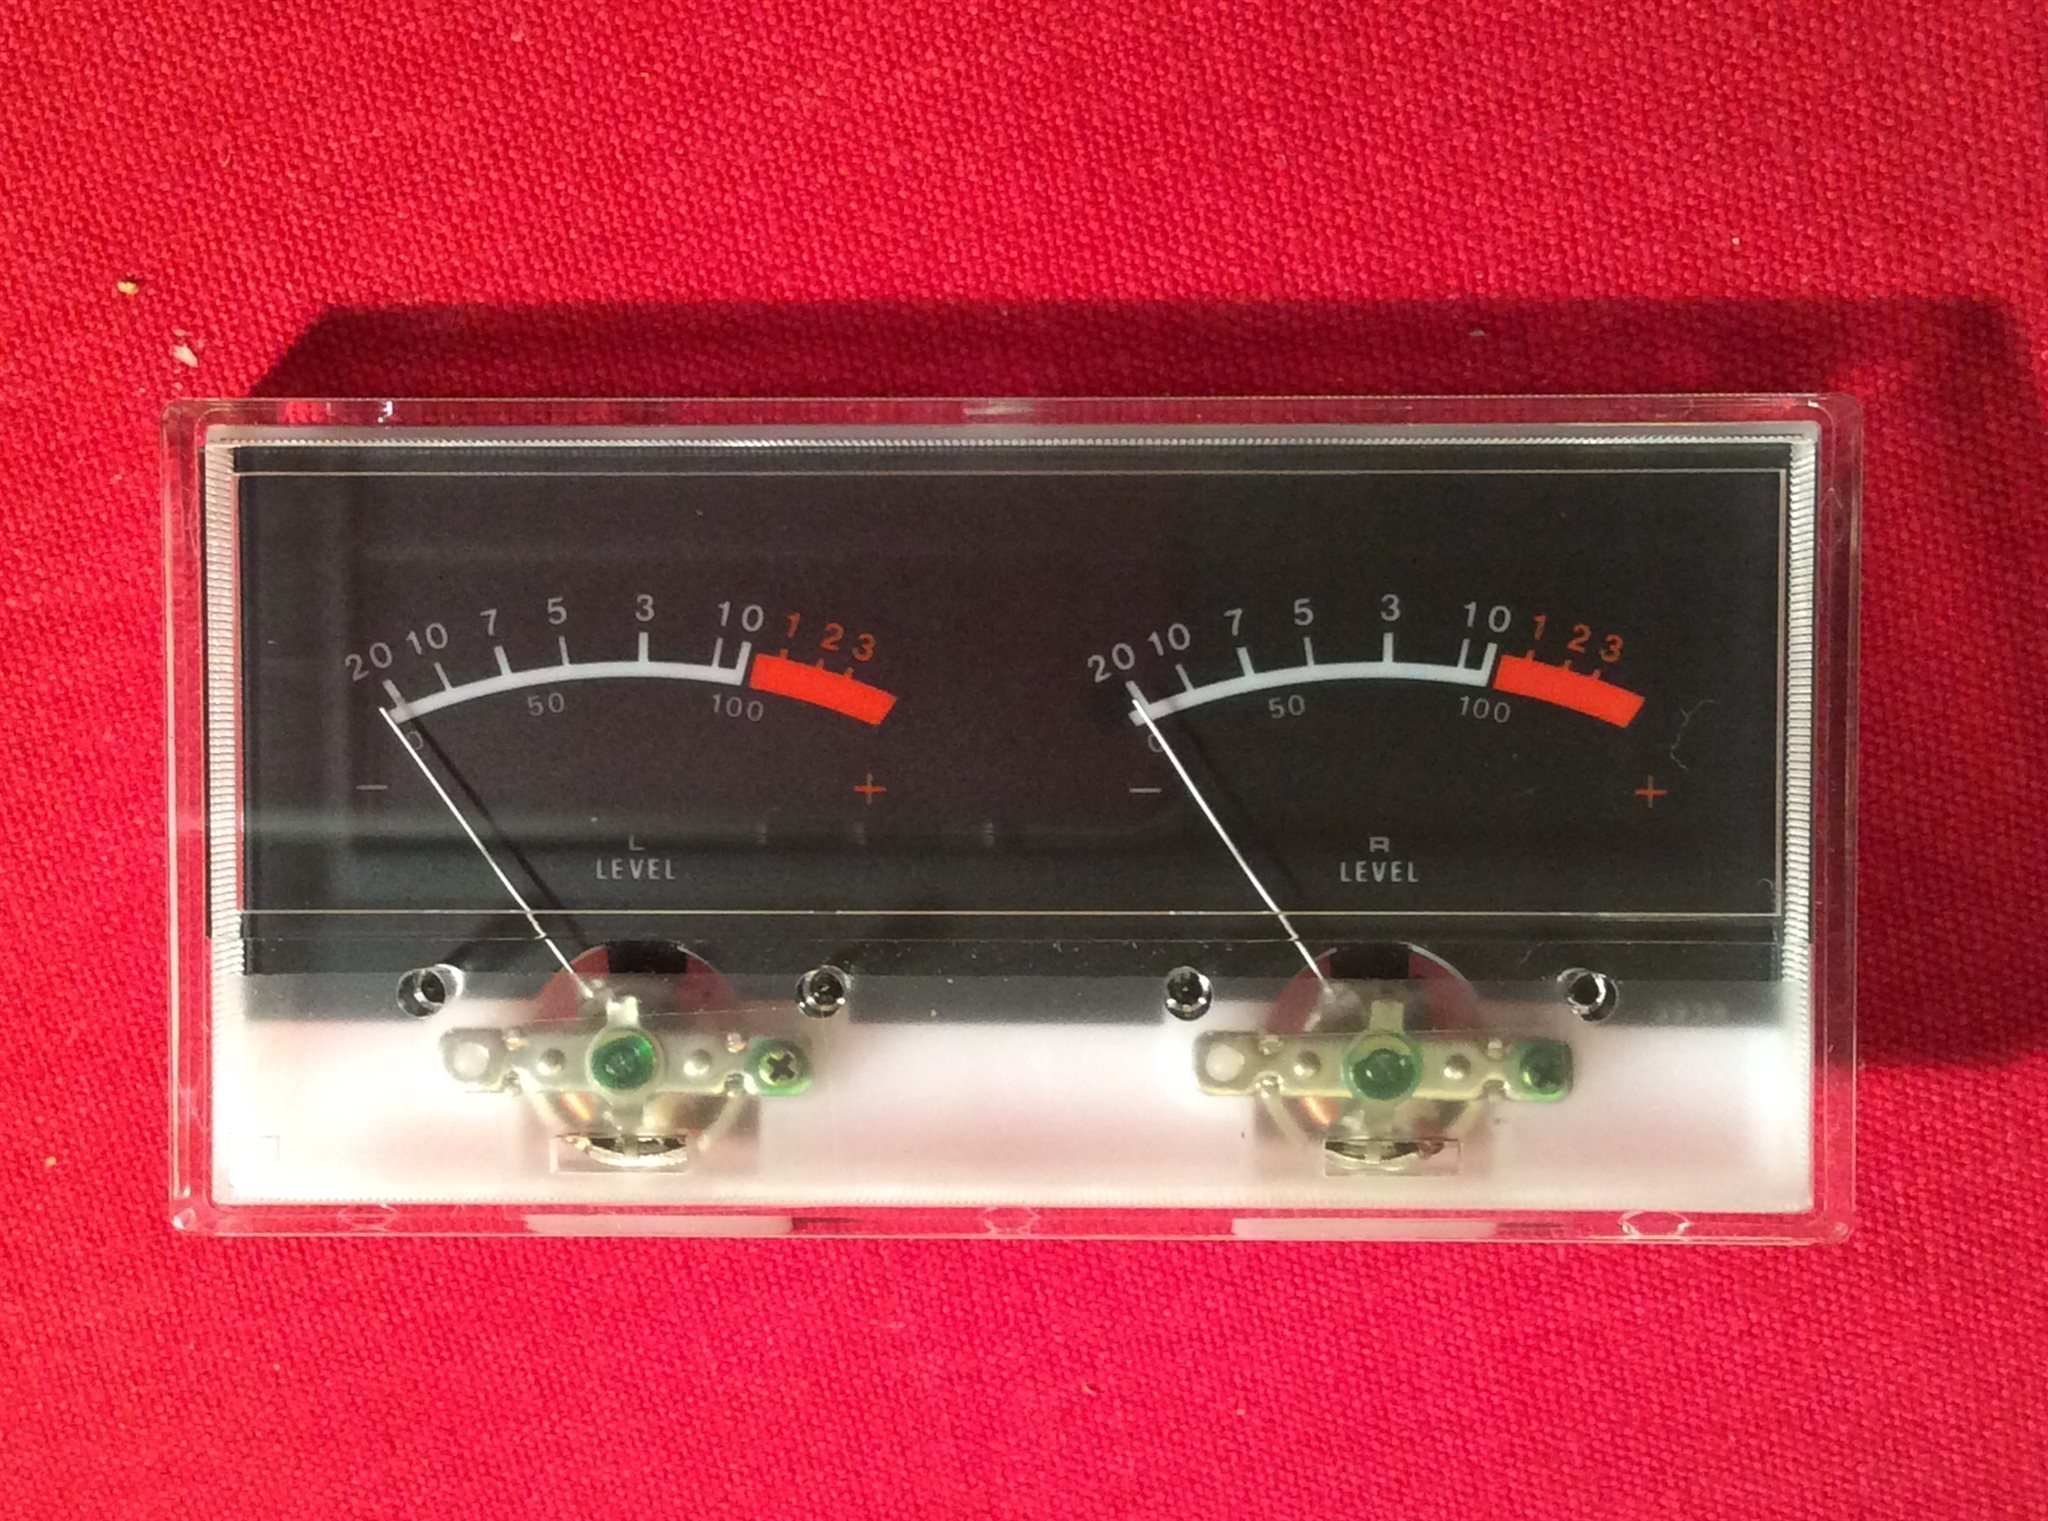 "1 st VU-meter. Dubbel mätare: ""Left level - Right level"".  Genomlysningsbar."